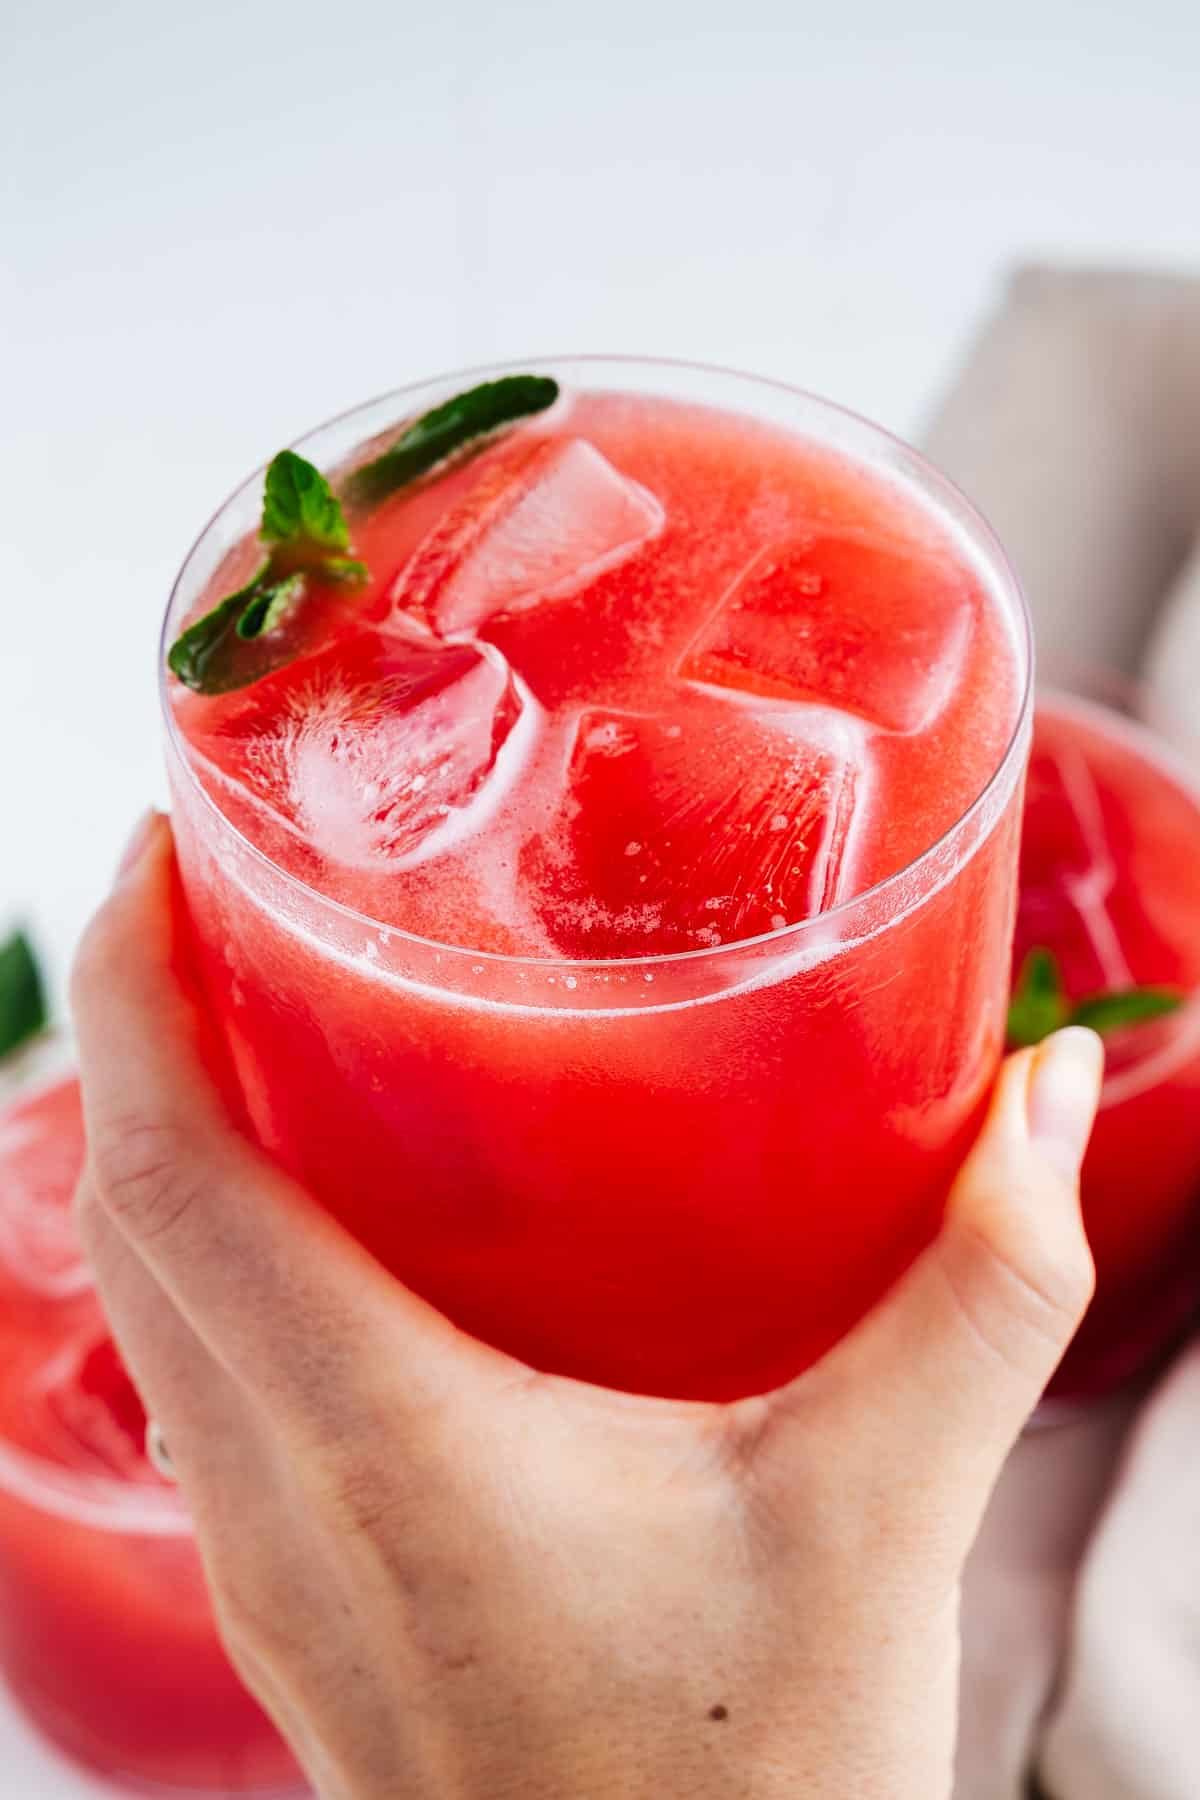 Hand Holding a Glass of Agua de Sandia